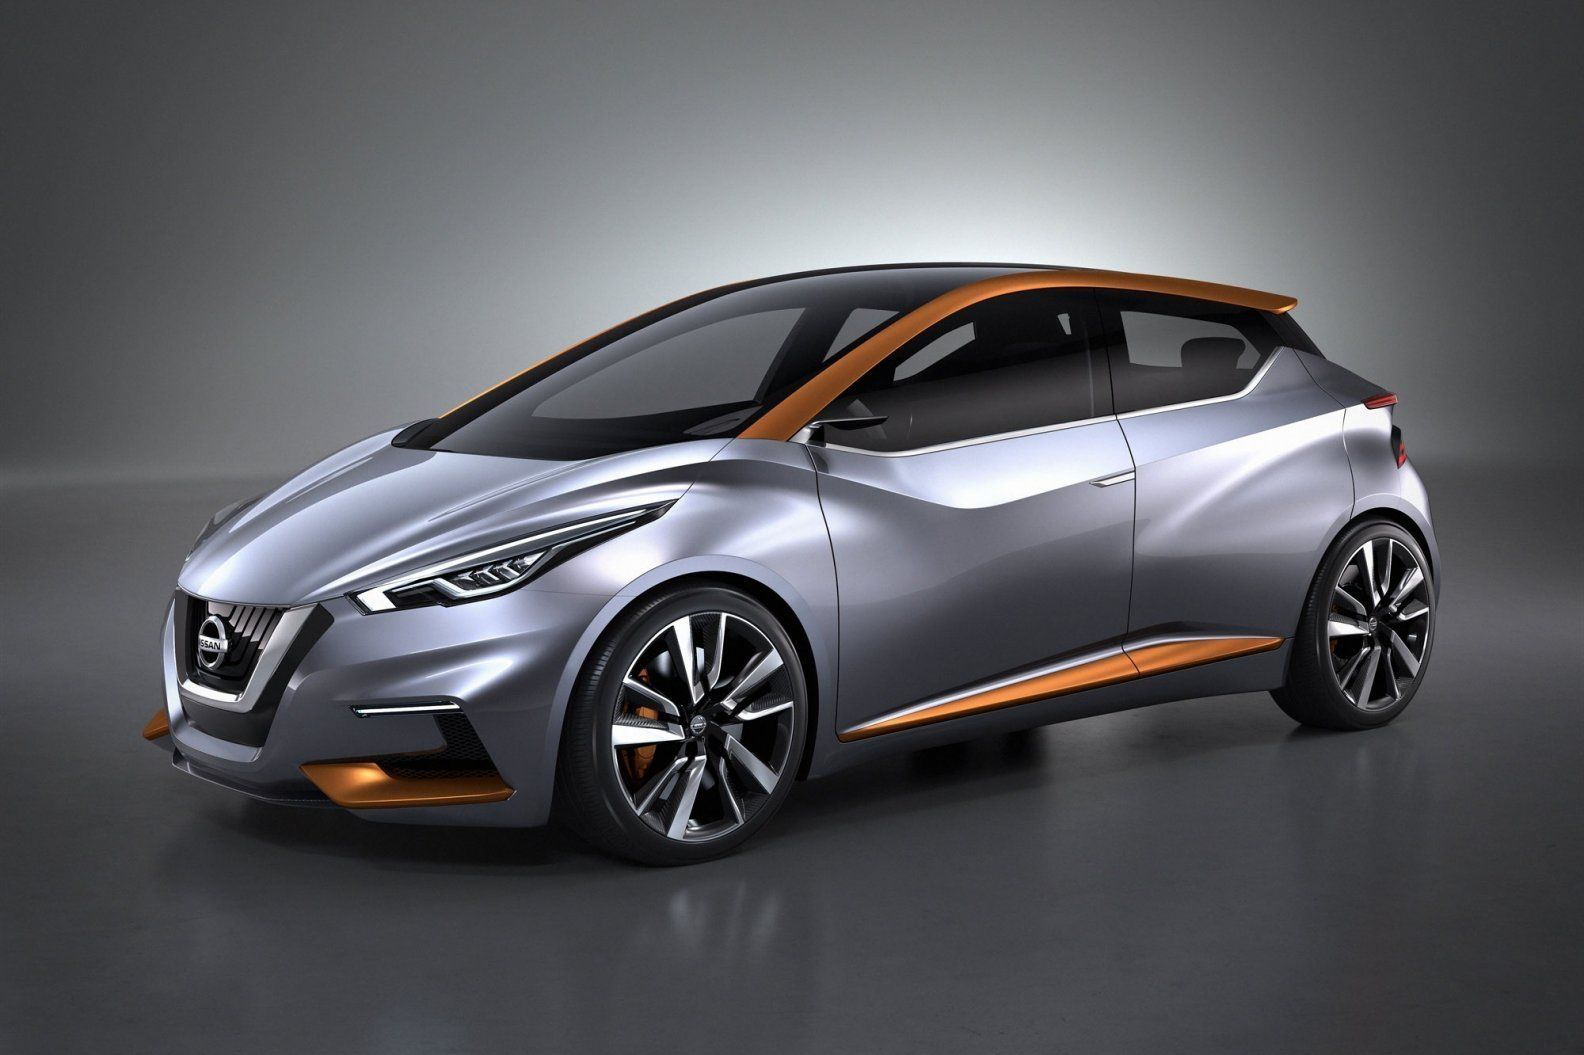 New Nissan Micra 2020 Specs Car Price 2019 Nissan Small Cars New Nissan Micra Concept Cars